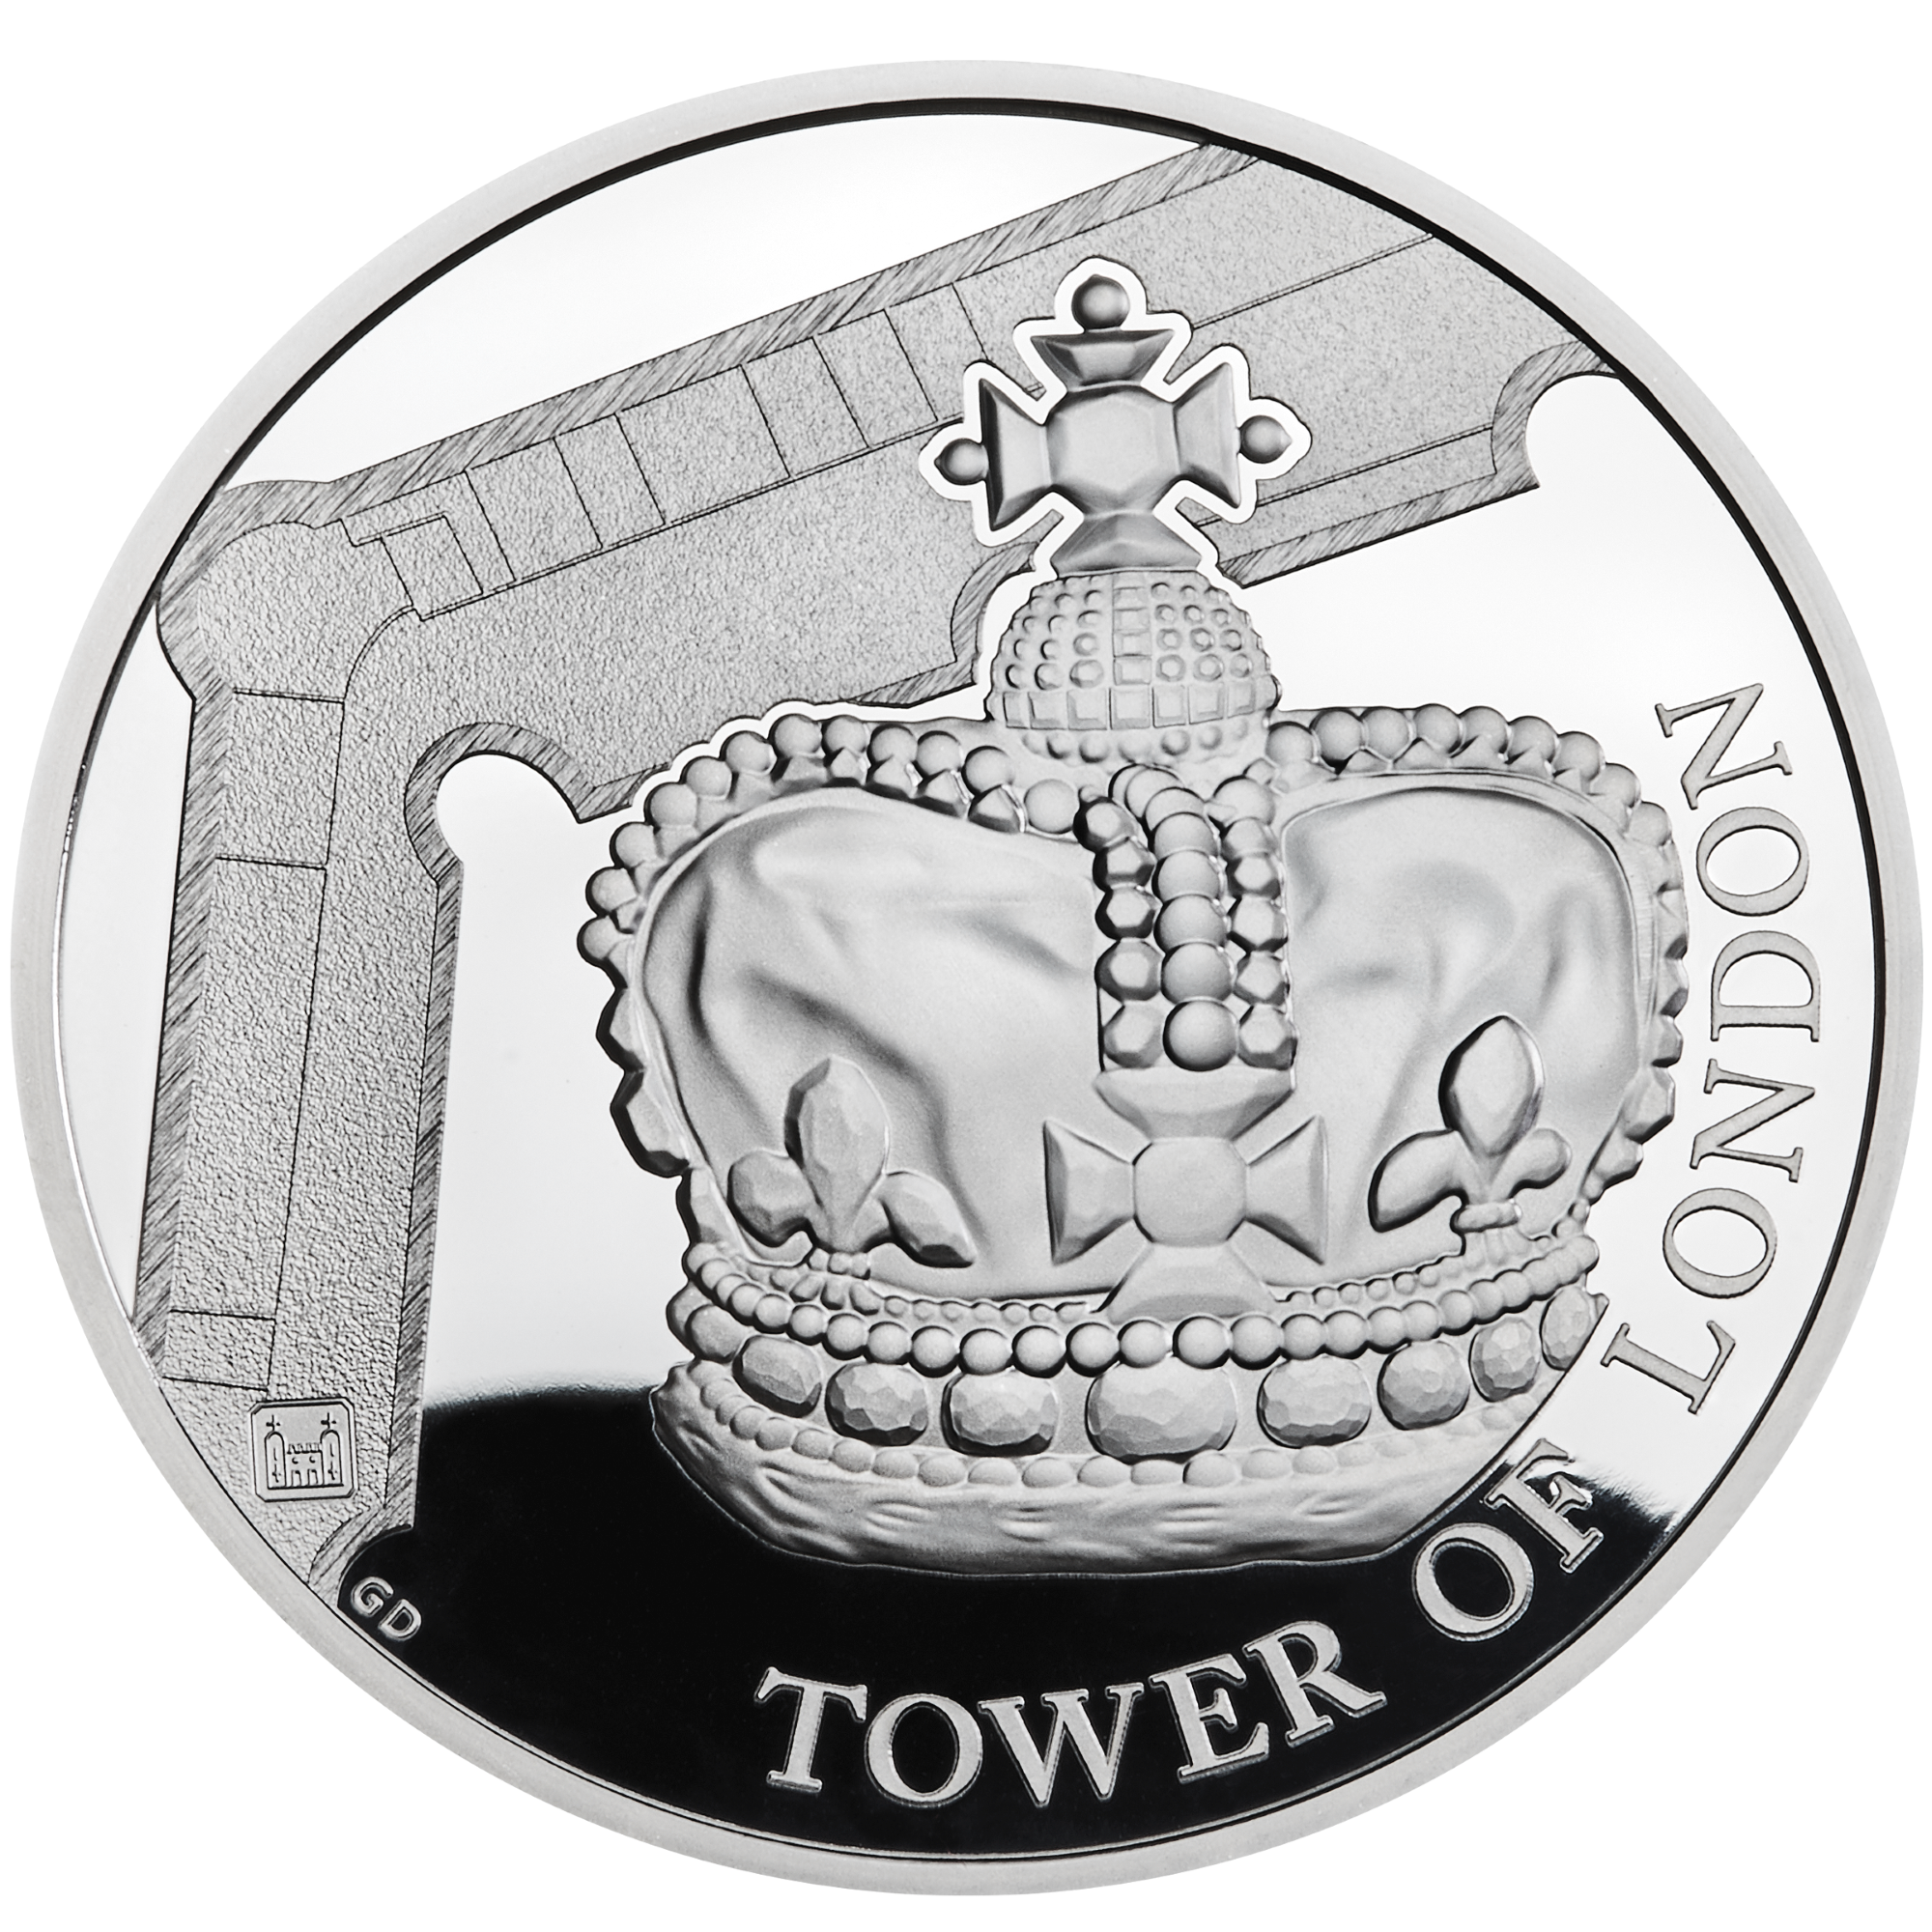 16 yrs old boynsparency clipart music tones vector royalty free library The Crown Jewels £5 coin unveiled by Royal Mint as part of new Tower ... vector royalty free library